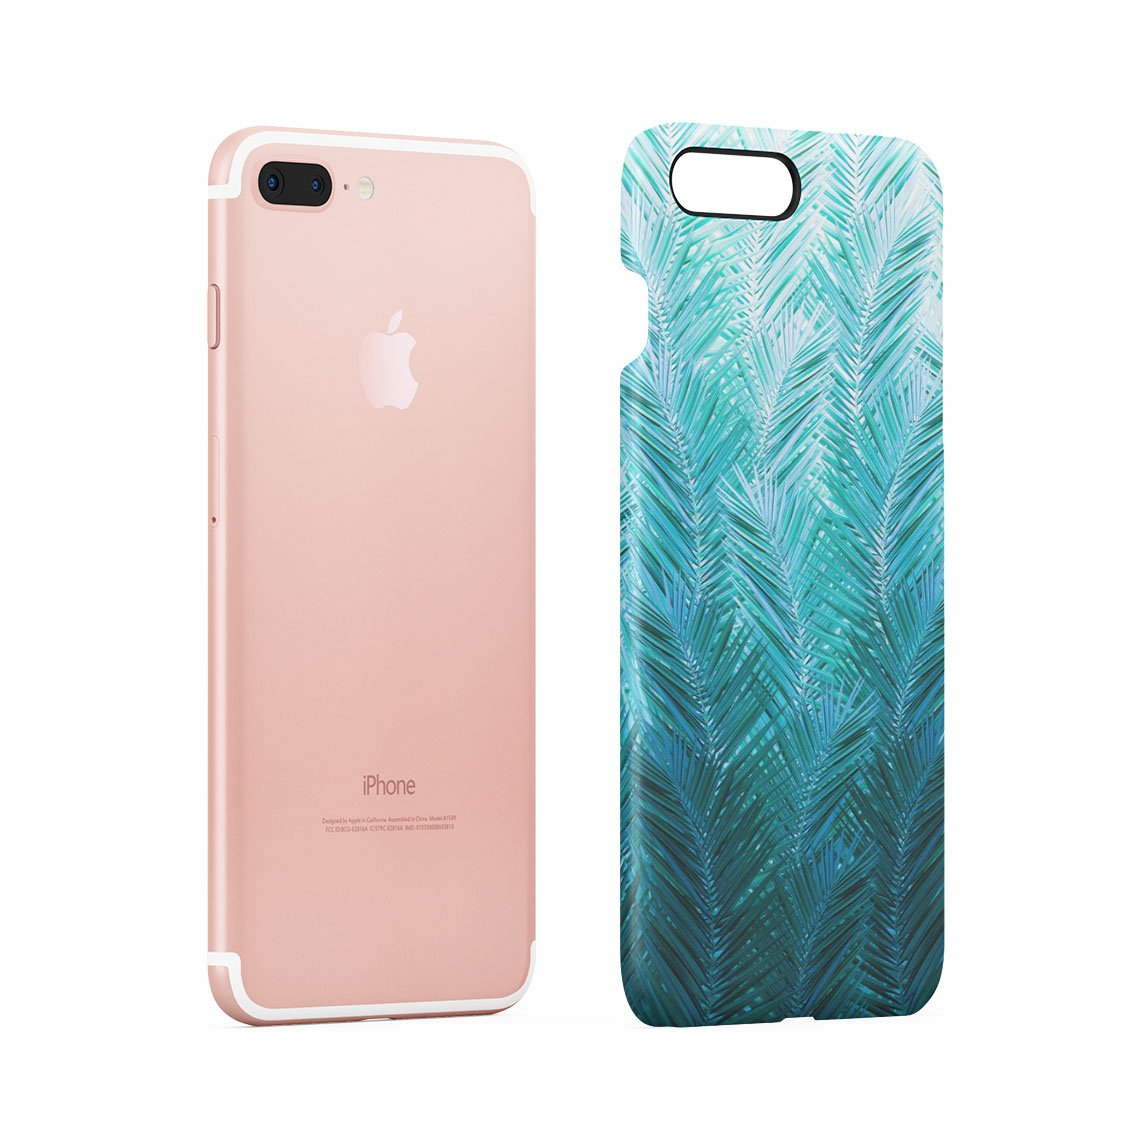 Jade Green Tropical Leaves Ombre Hard Thin Plastic Phone Case Cover For iPhone  7 Plus & iPhone 8 Plus: Amazon.co.uk: Electronics